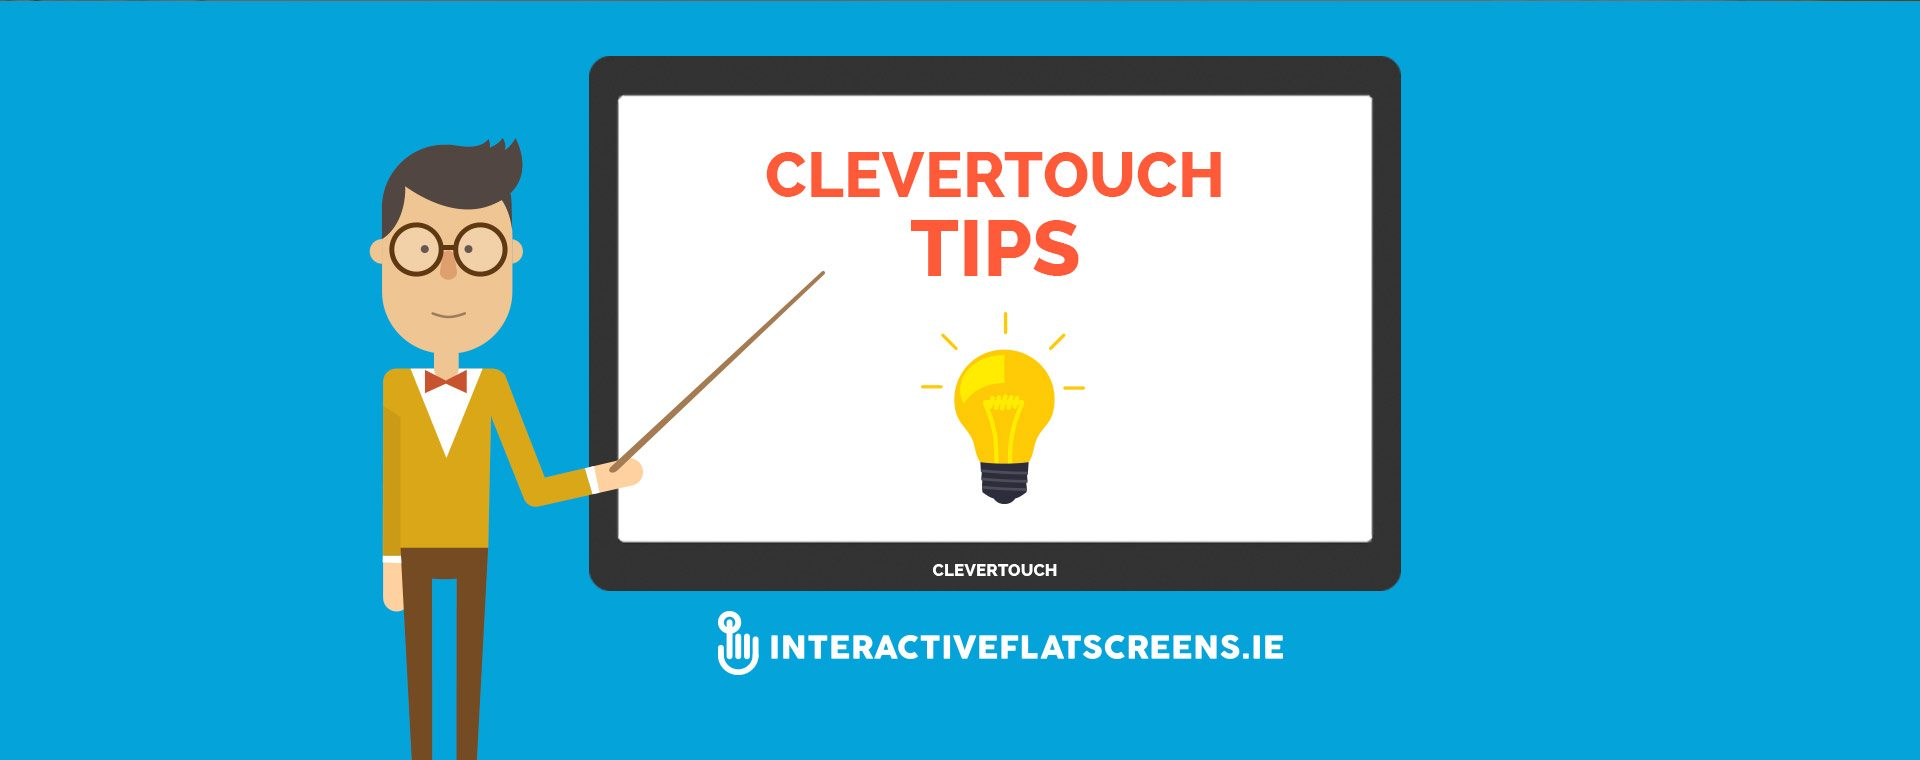 Clevertouch Tips - Interactive Flat Screens Dublin